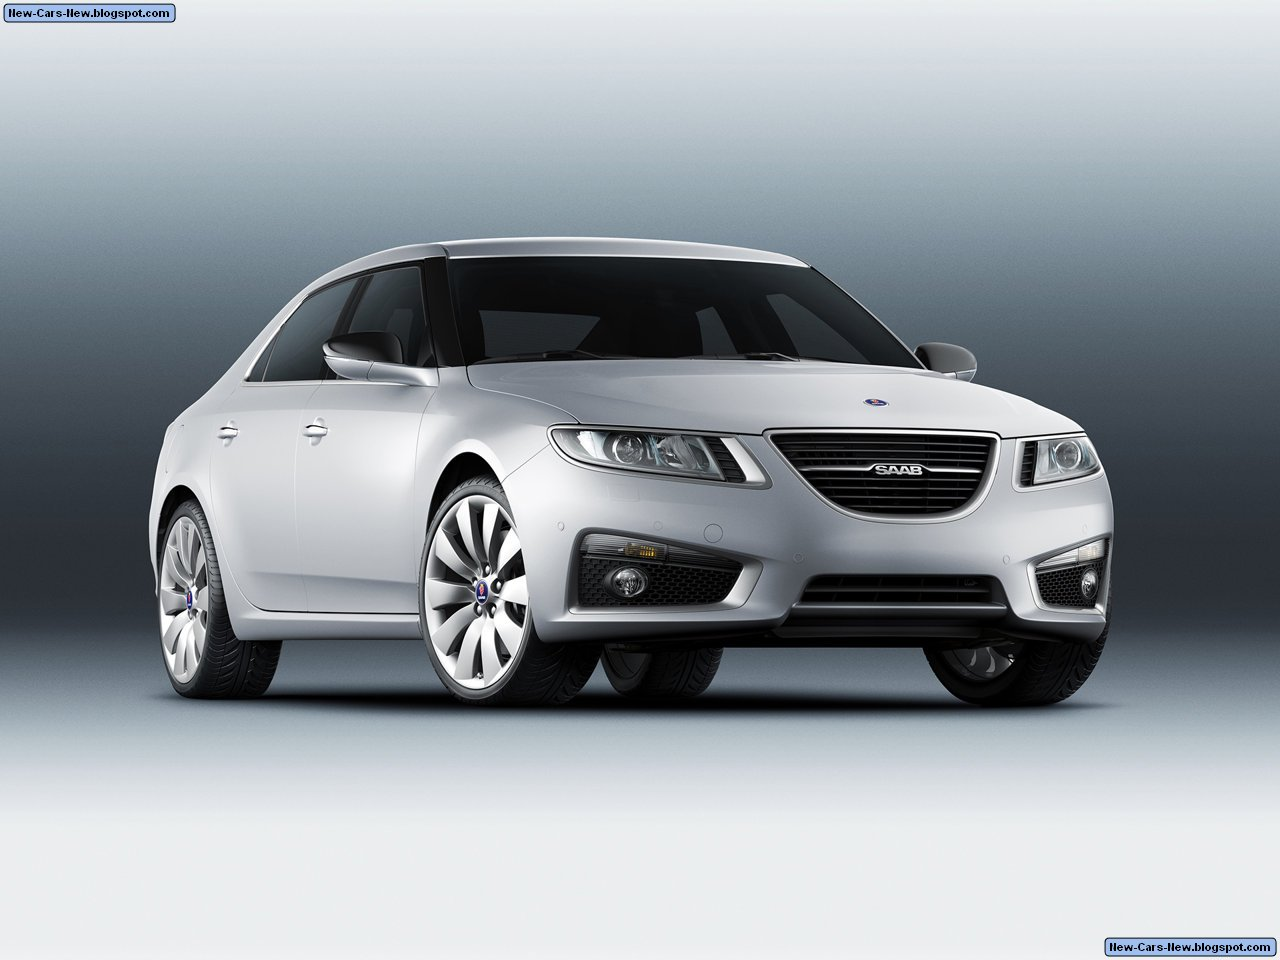 saab 9 5 sedan 2010 best car blog saab 9 5 sedan 2010. Black Bedroom Furniture Sets. Home Design Ideas